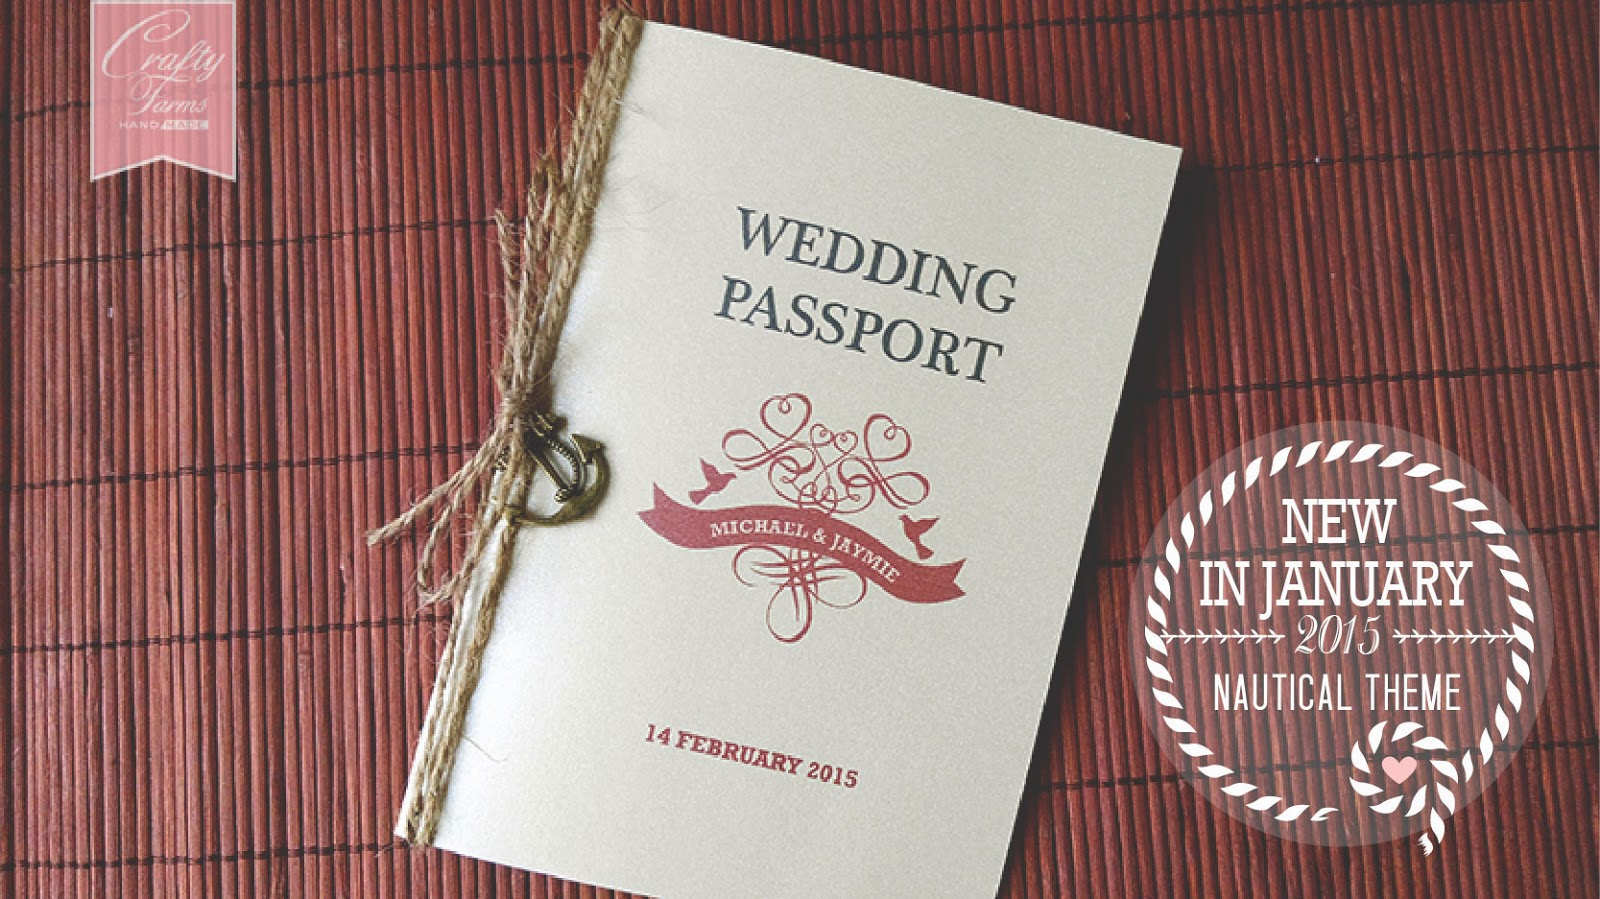 Vintage Nautical Passport Wedding Card with Anchor Charm available now in Malaysia